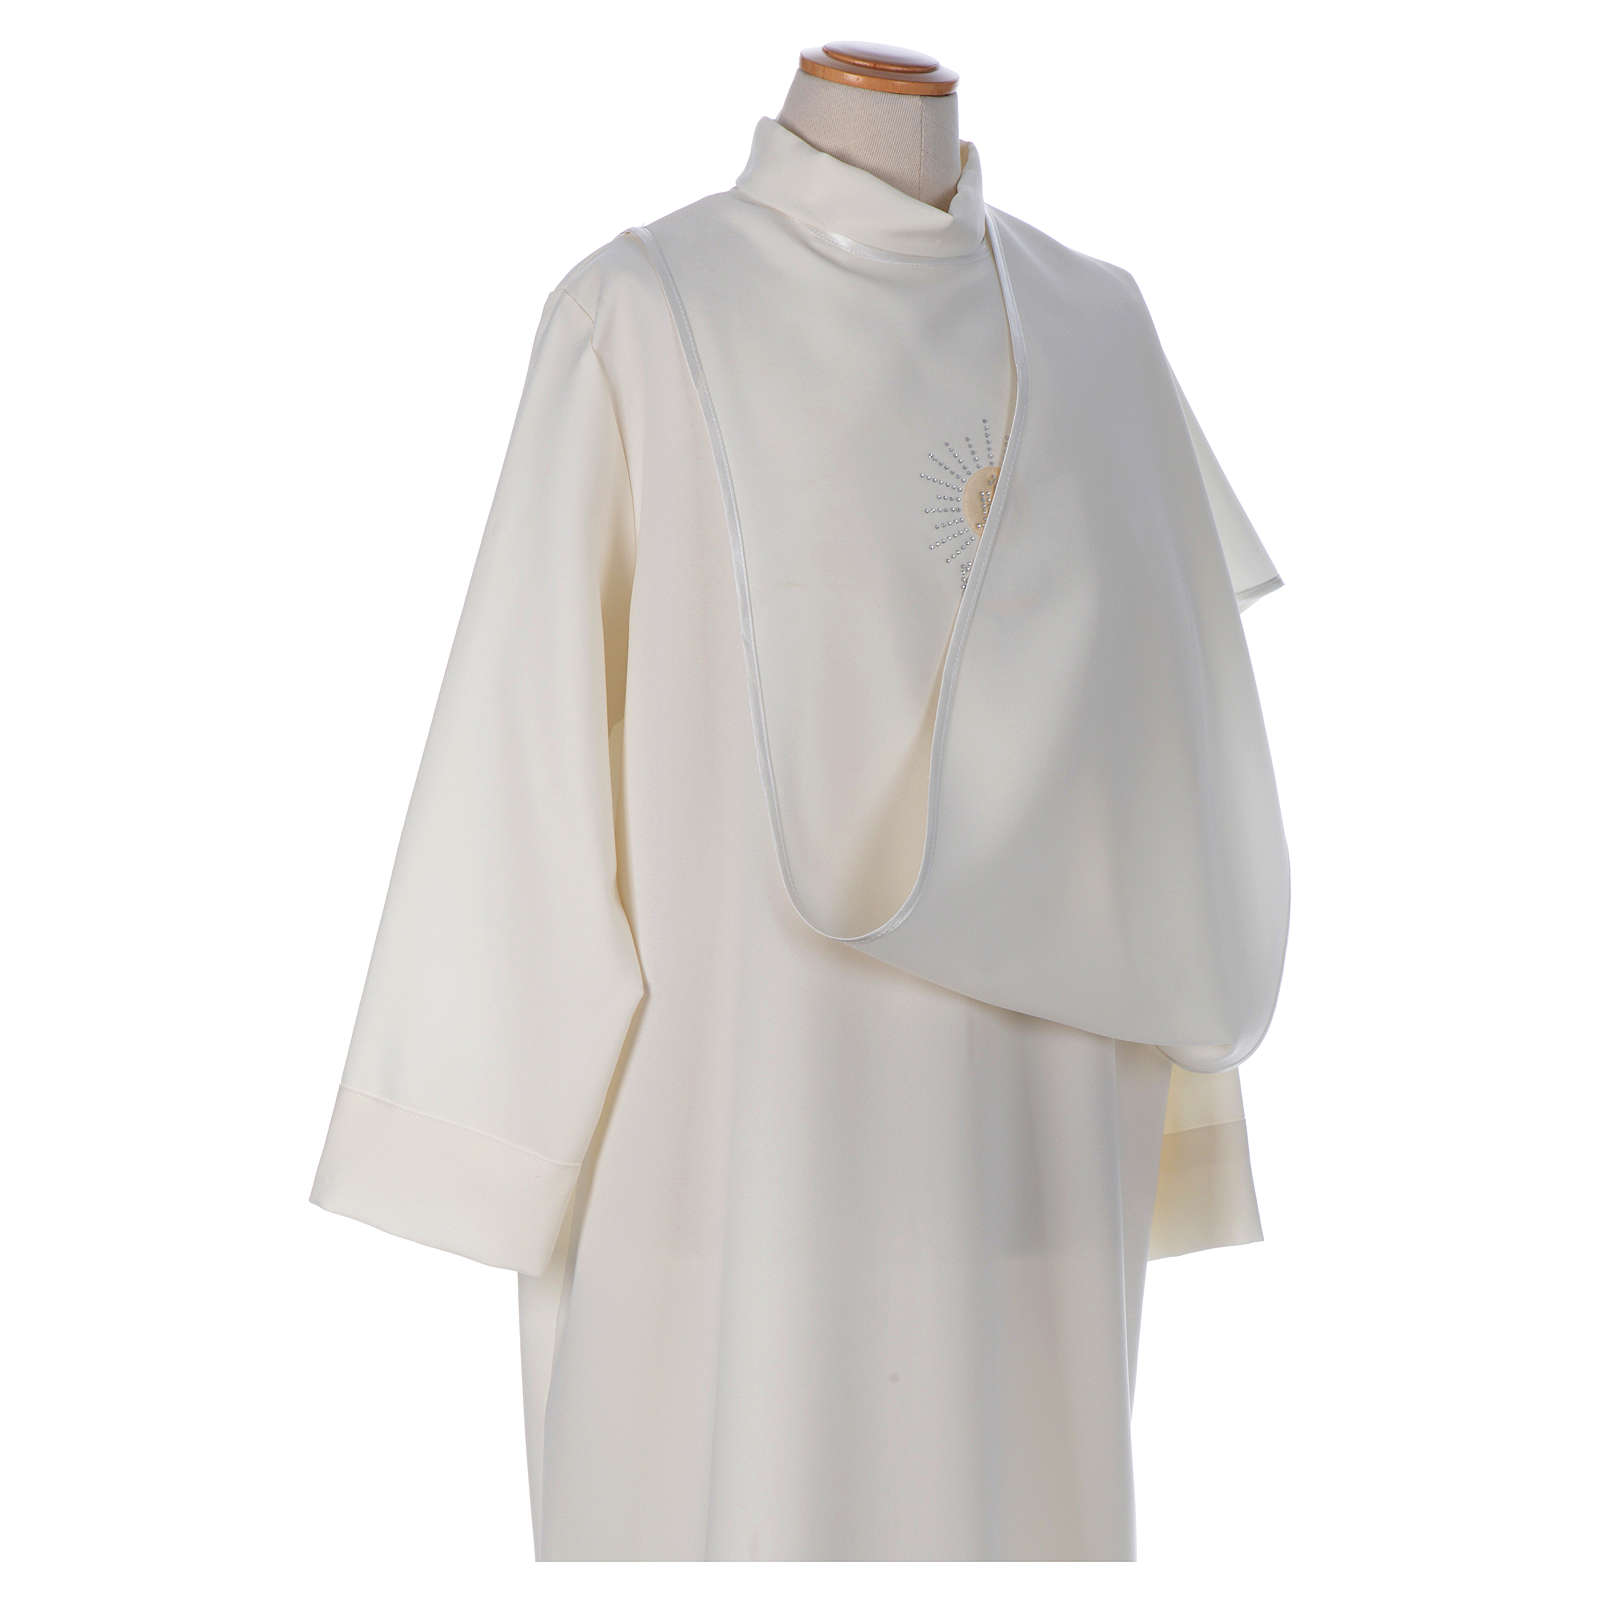 First Communion alb with satin sidelong and rhinestone, ivory 4